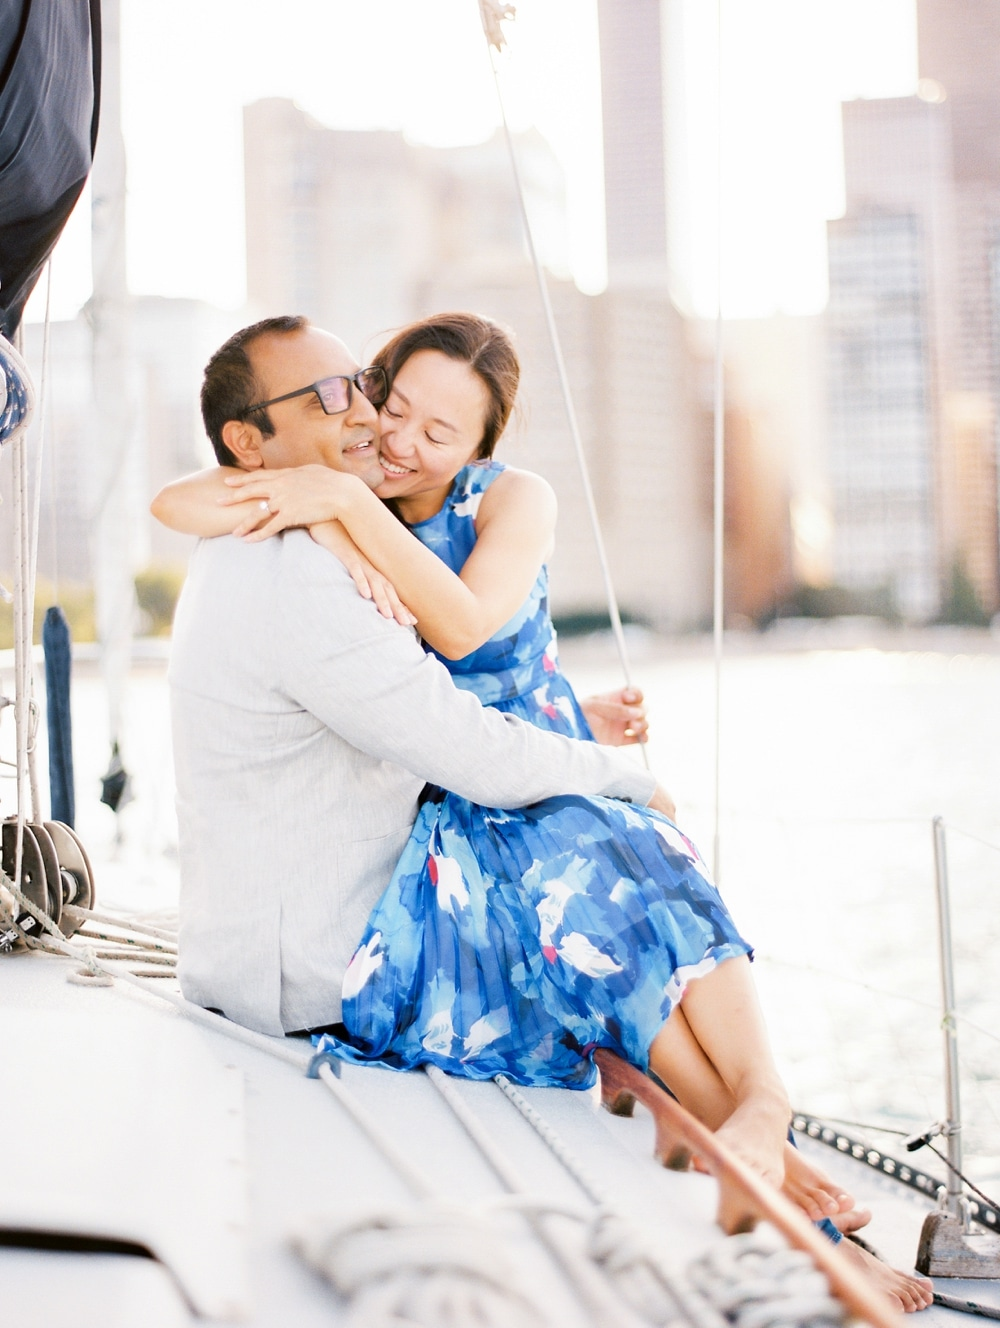 kristin-la-voie-photography-Chicago-wedding-photographer-lake-michigan-sailing-11